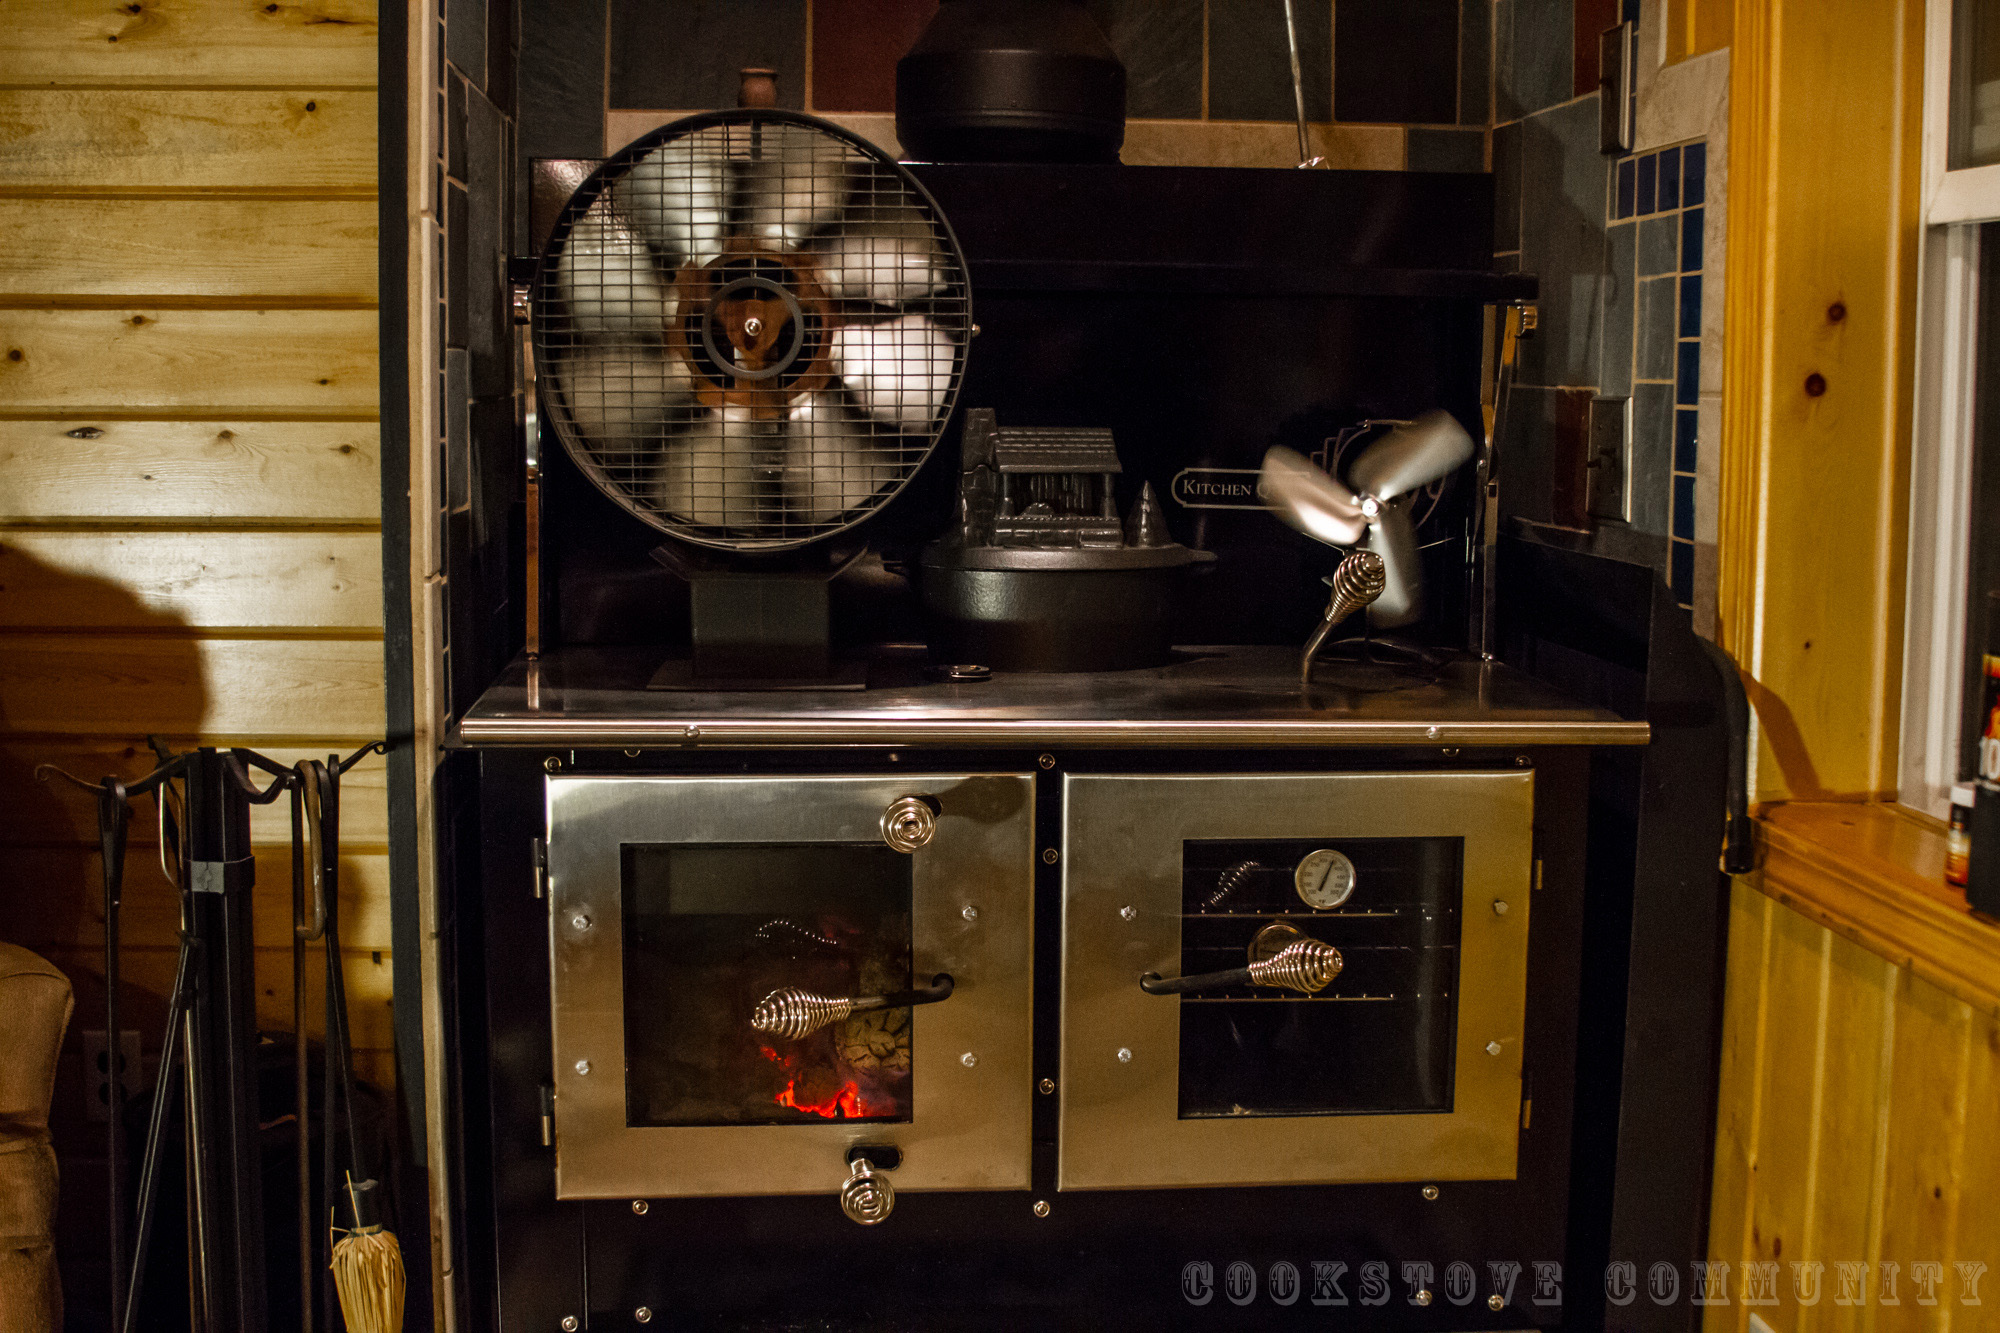 kitchen cook stoves exhaust fans for kitchens cookstove photos gallery community